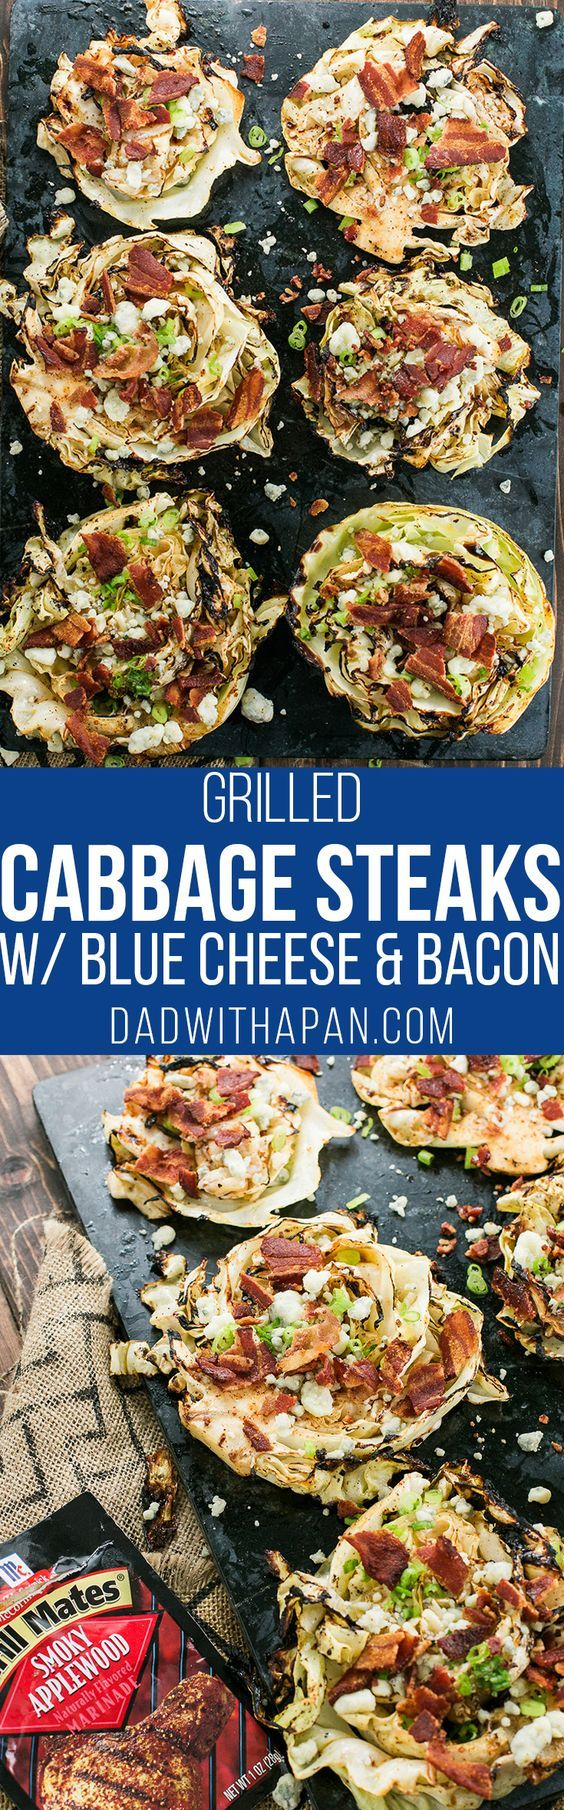 Grilled Cabbage Steaks Marinated With McCormick Grill Mates Smoky Applewood seasoning, topped with Bacon, Blue Cheese, and Green onions! @mccormickspice